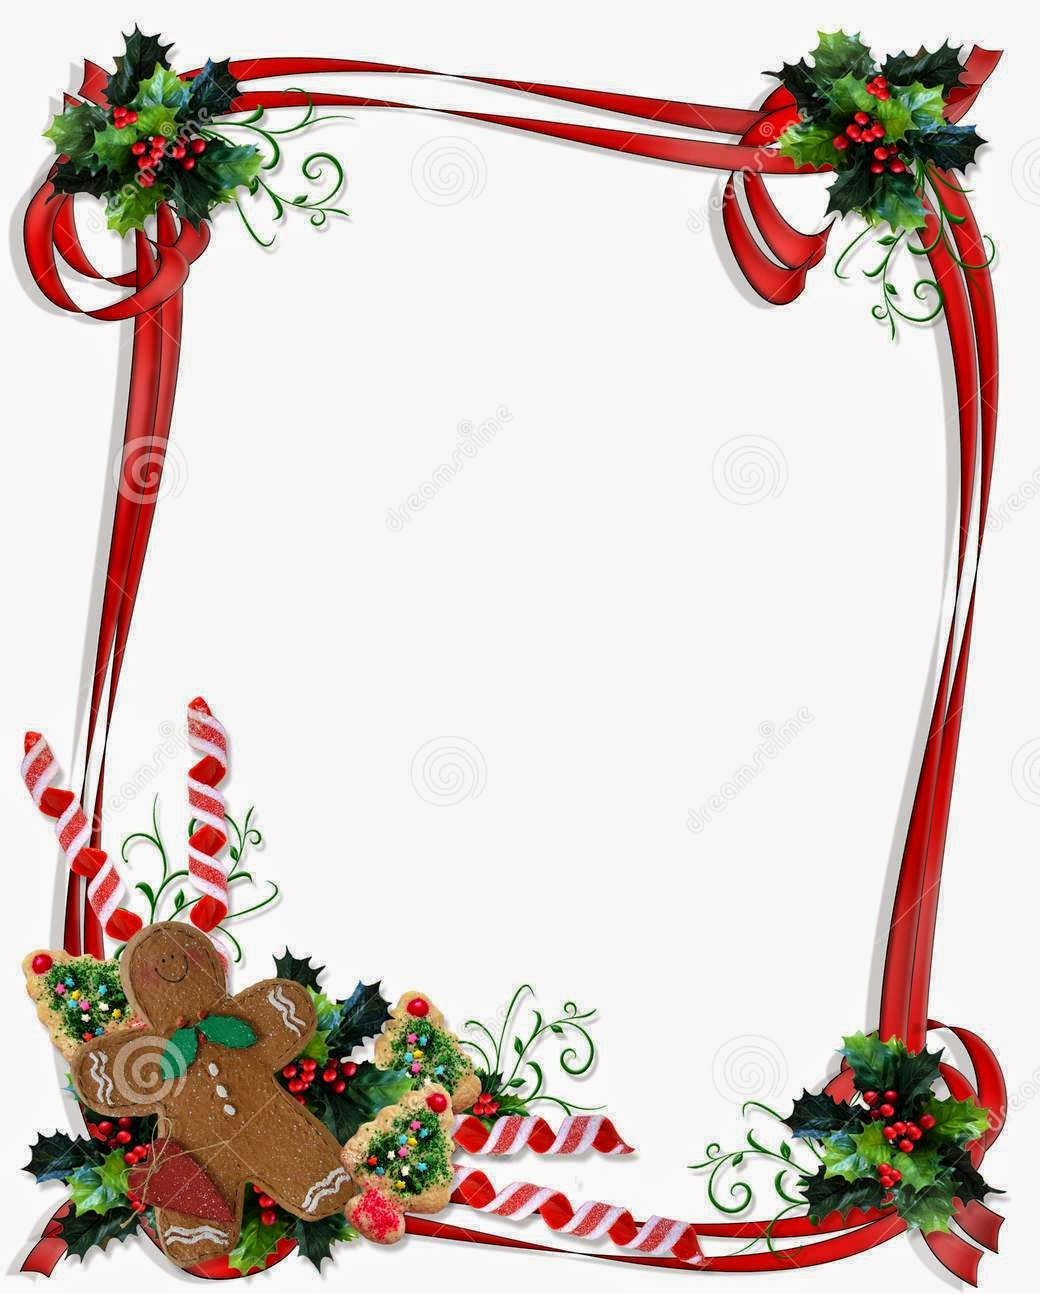 free download christmas clipart borders - photo #27